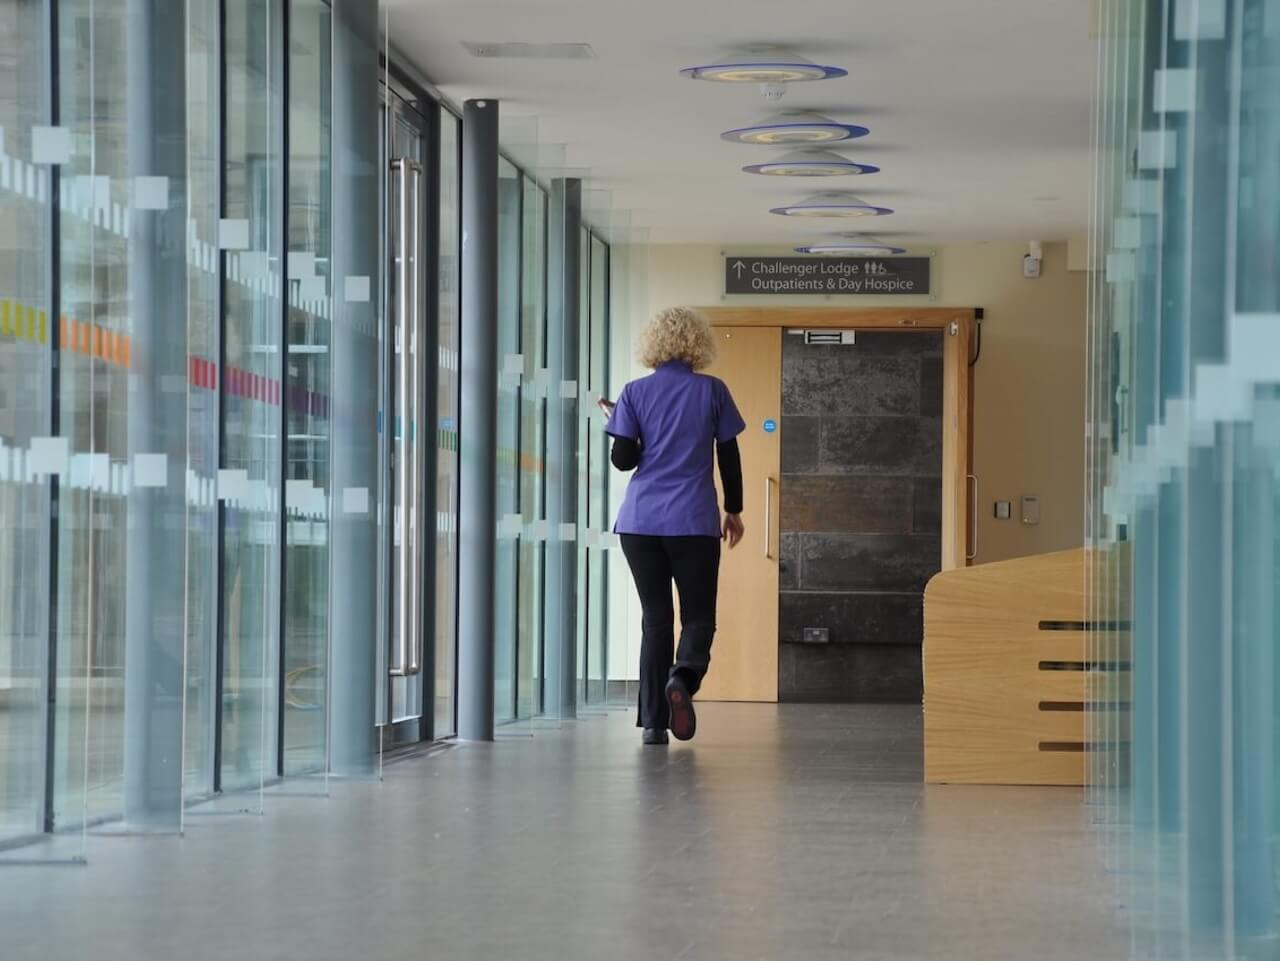 Healthcare signage and wayfinding with colourful manifestations along a glass corridor